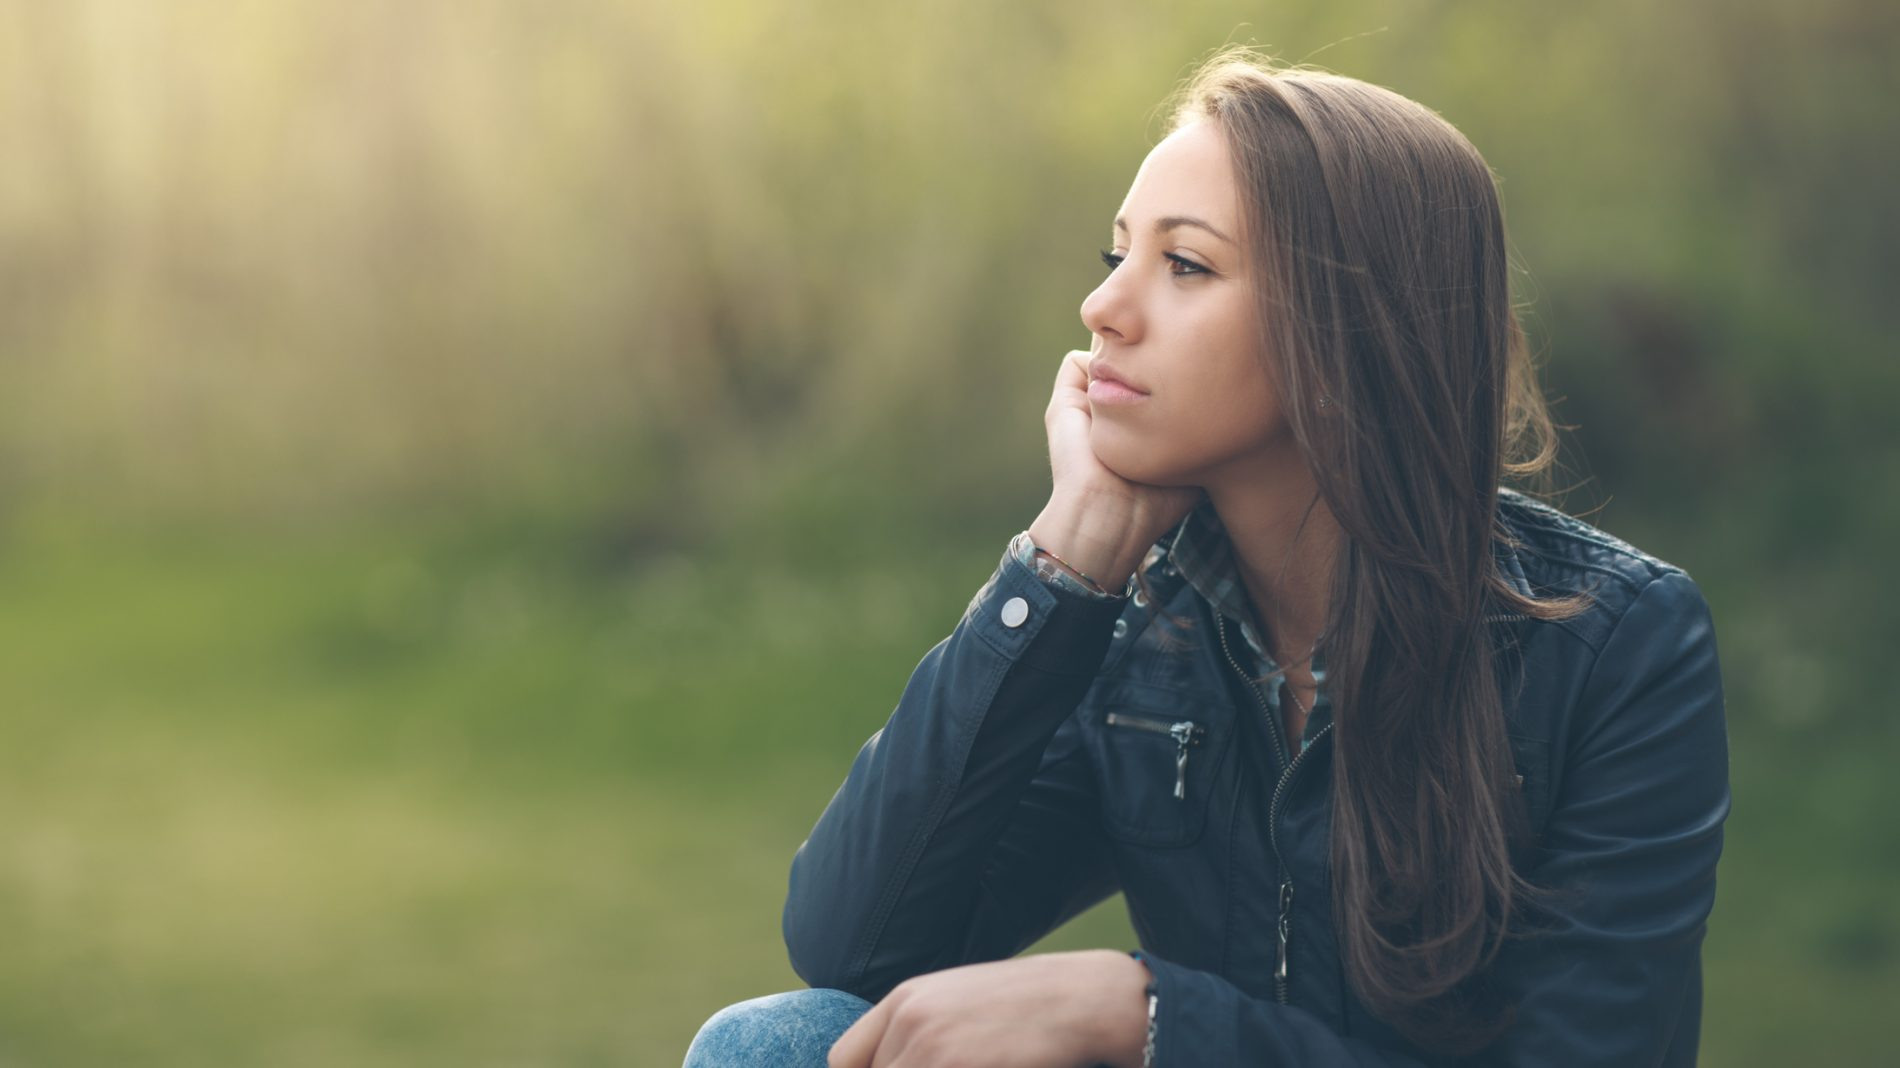 Young woman sitting outdoors